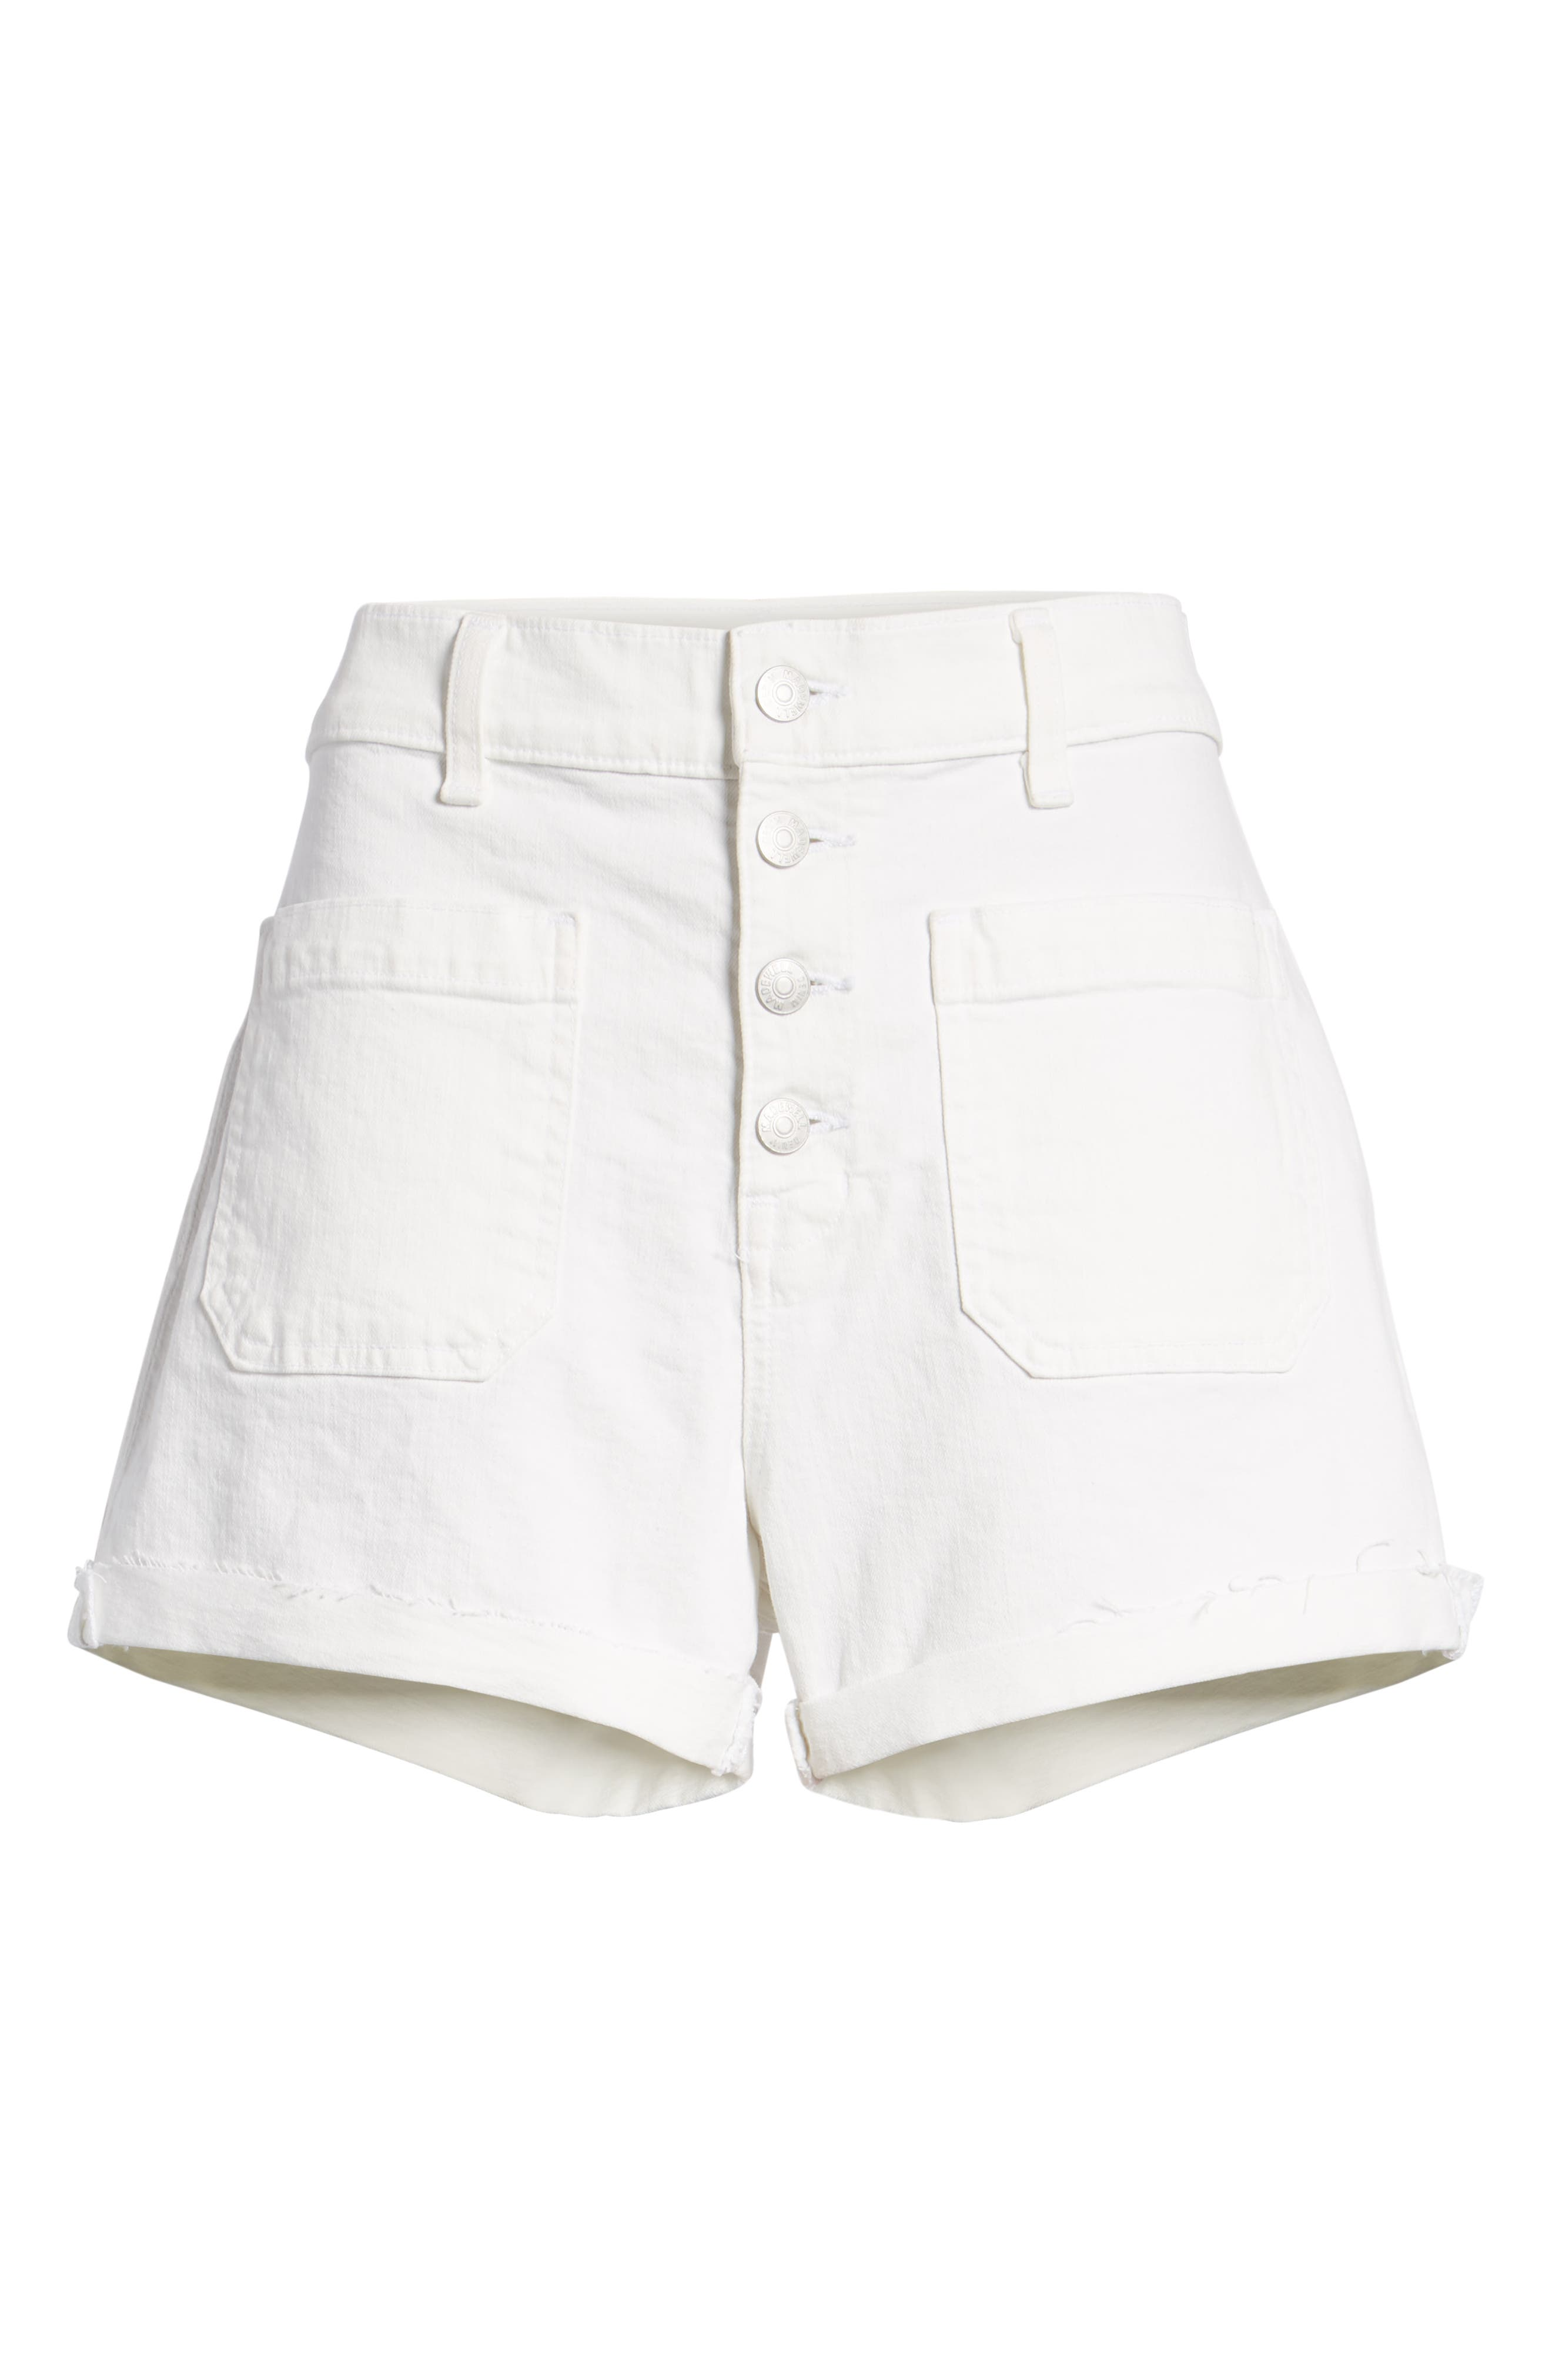 Denim Shorts,                             Alternate thumbnail 4, color,                             TILE WHITE